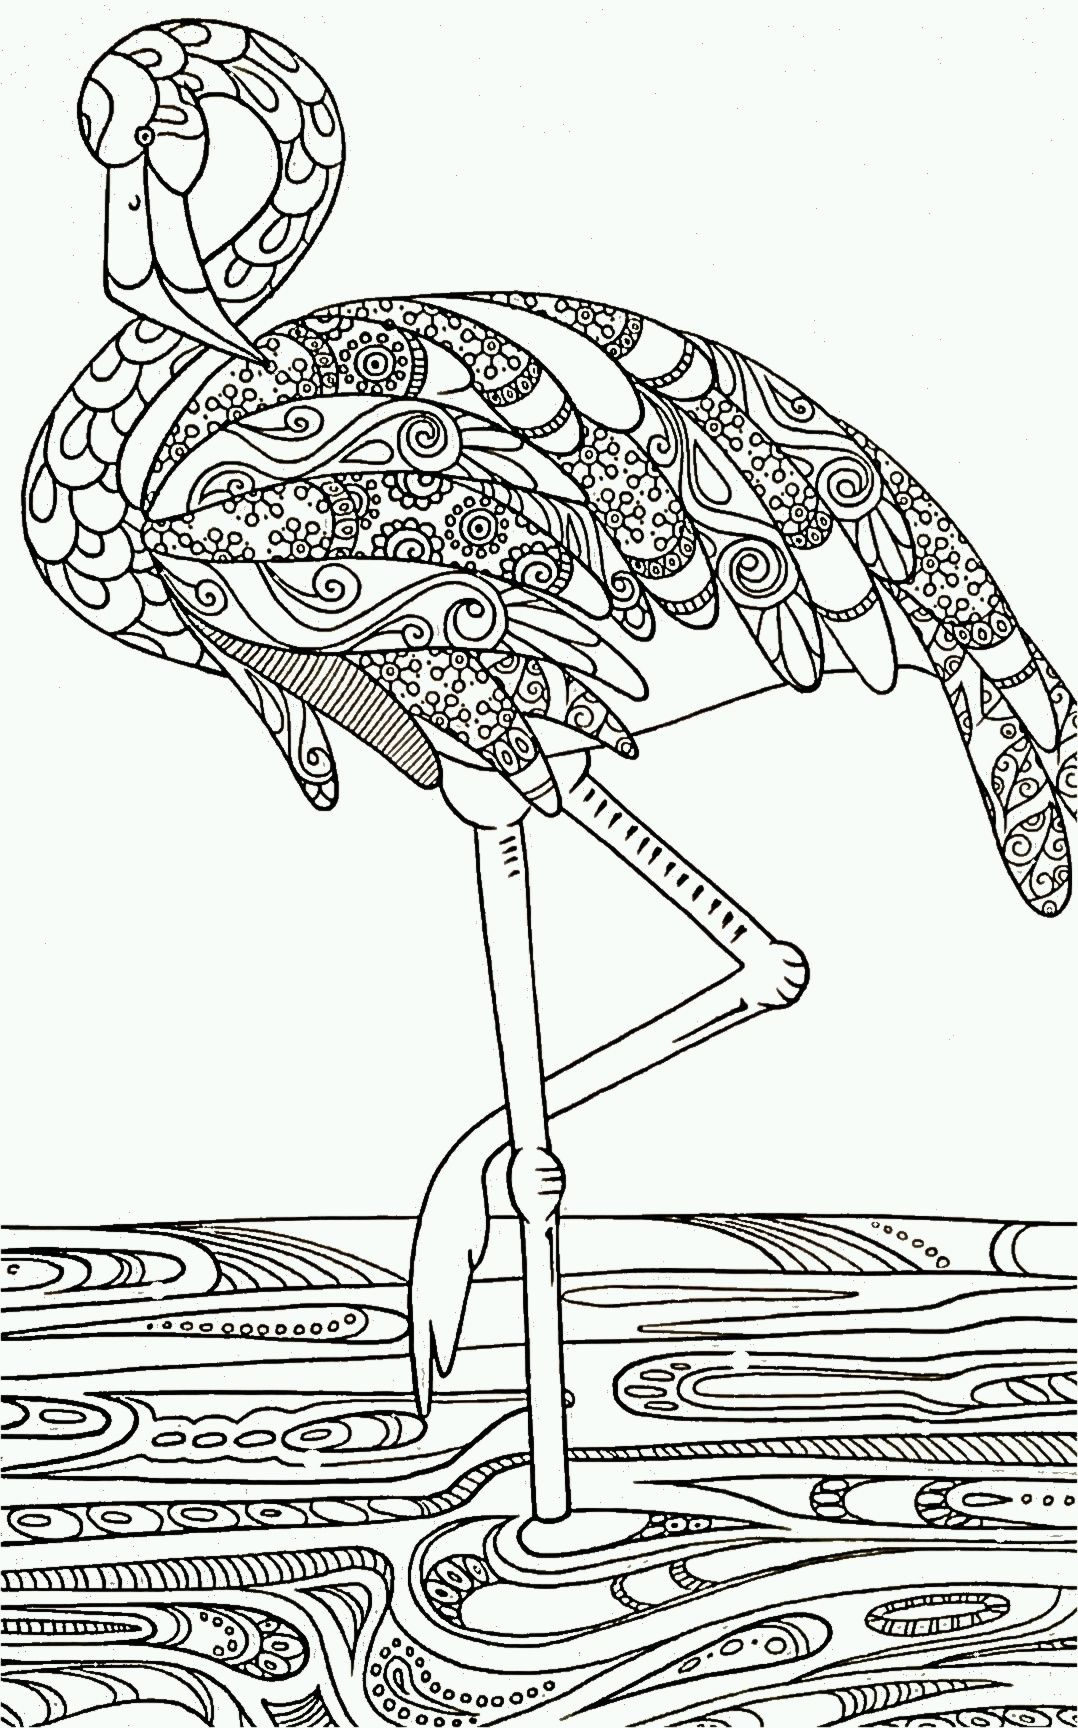 flamingo color page black and white drawing outline for decorative painting idea struisvogel - Flamingo Coloring Page